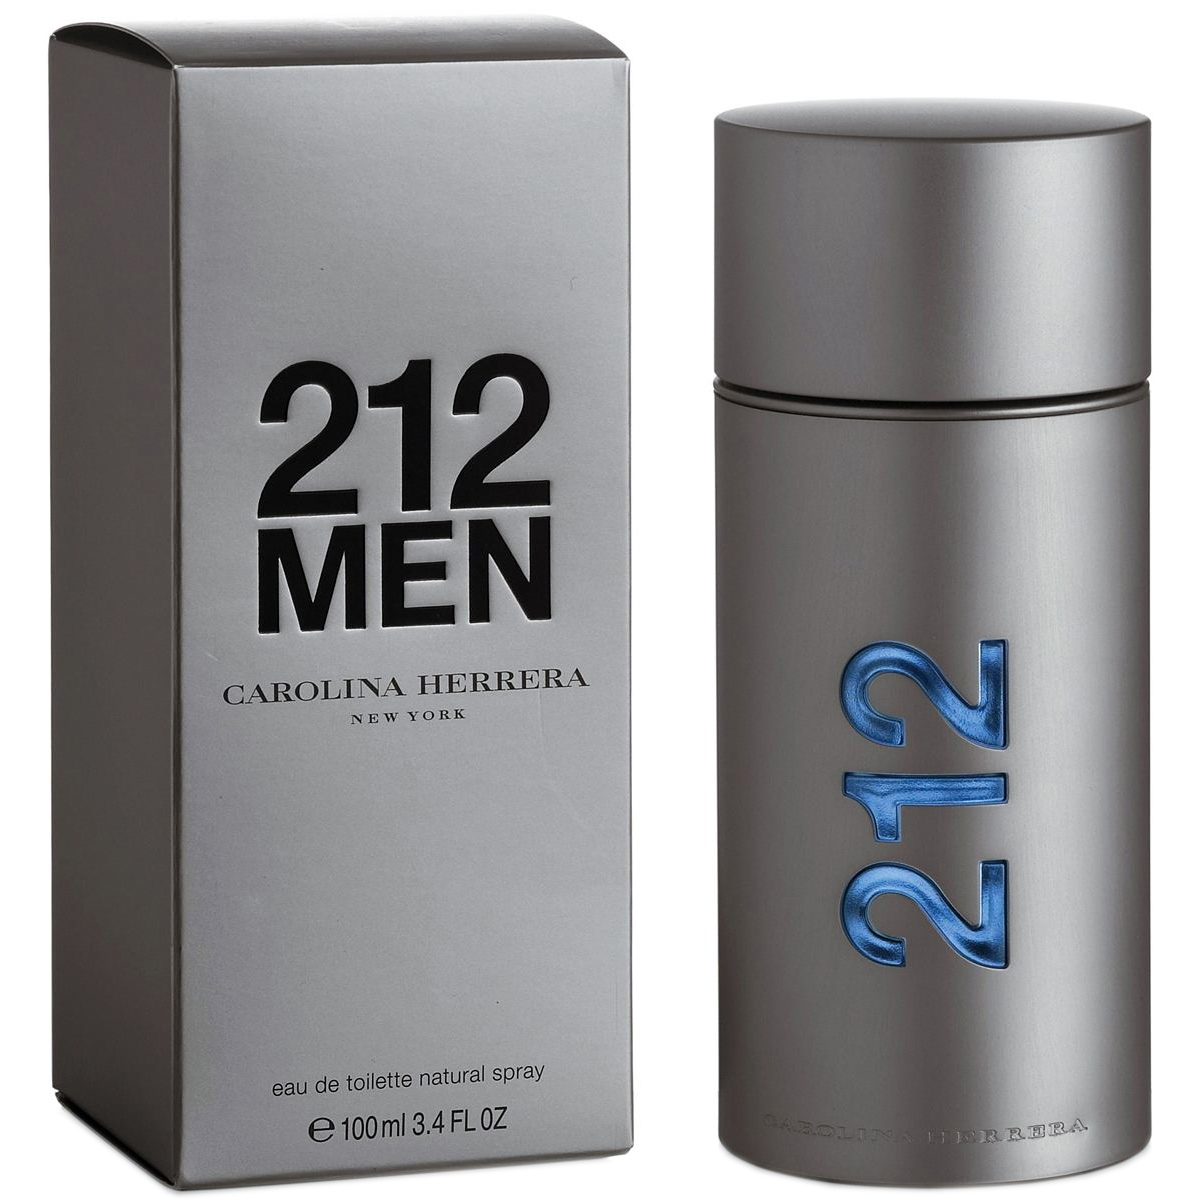 CAROLINA HERRERA 212, 100 ML, א.ד.ט